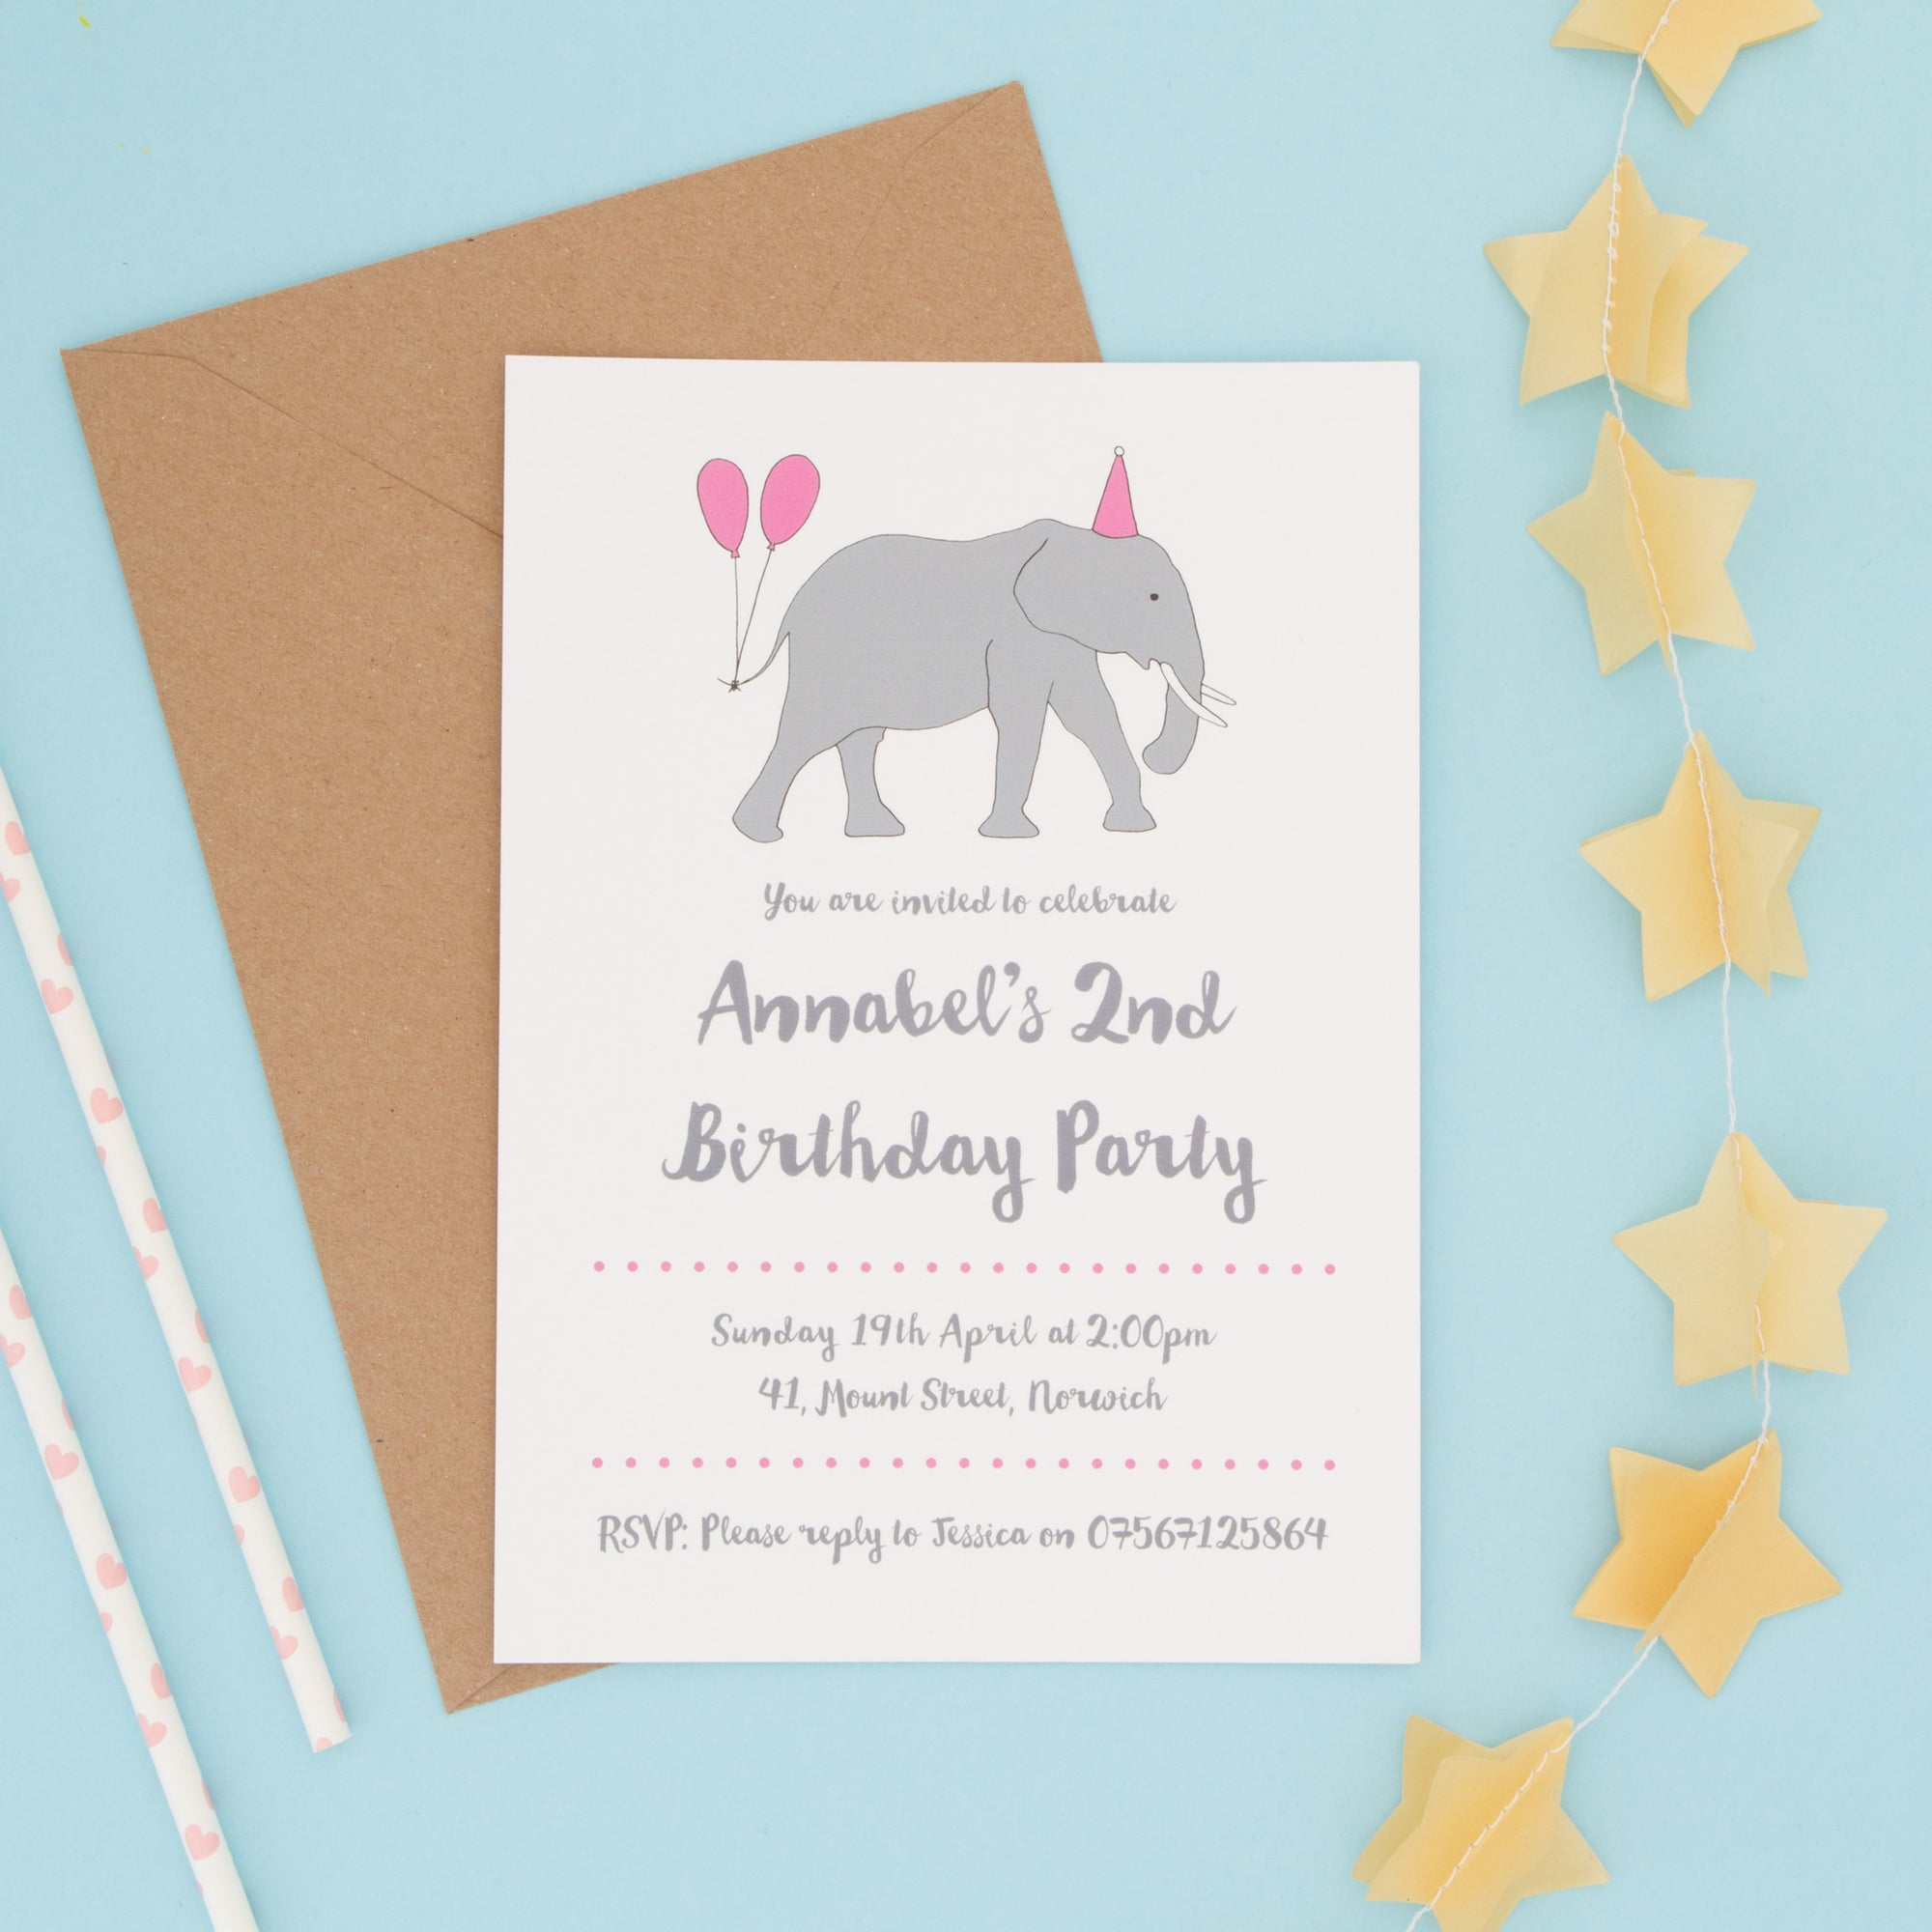 Children's Animal Party Invitations Invitations - The Two Wagtails